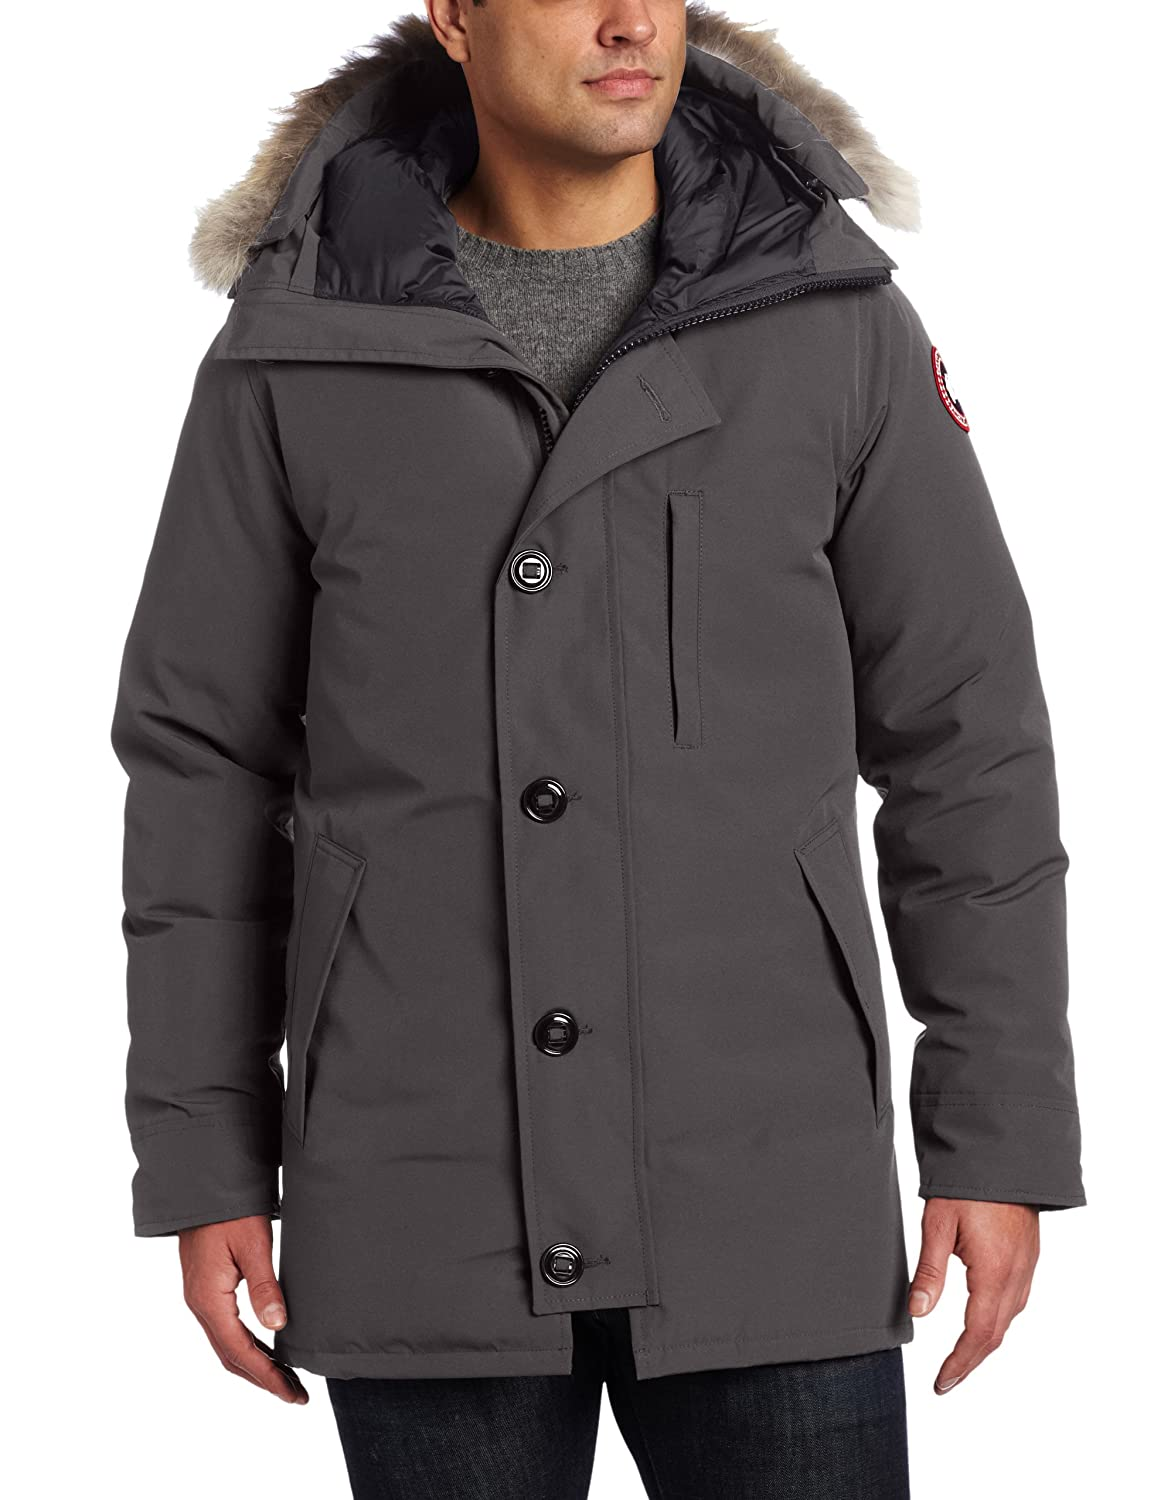 Canada Goose hats replica store - Amazon.com: Canada Goose Ontario Parka: Sports & Outdoors